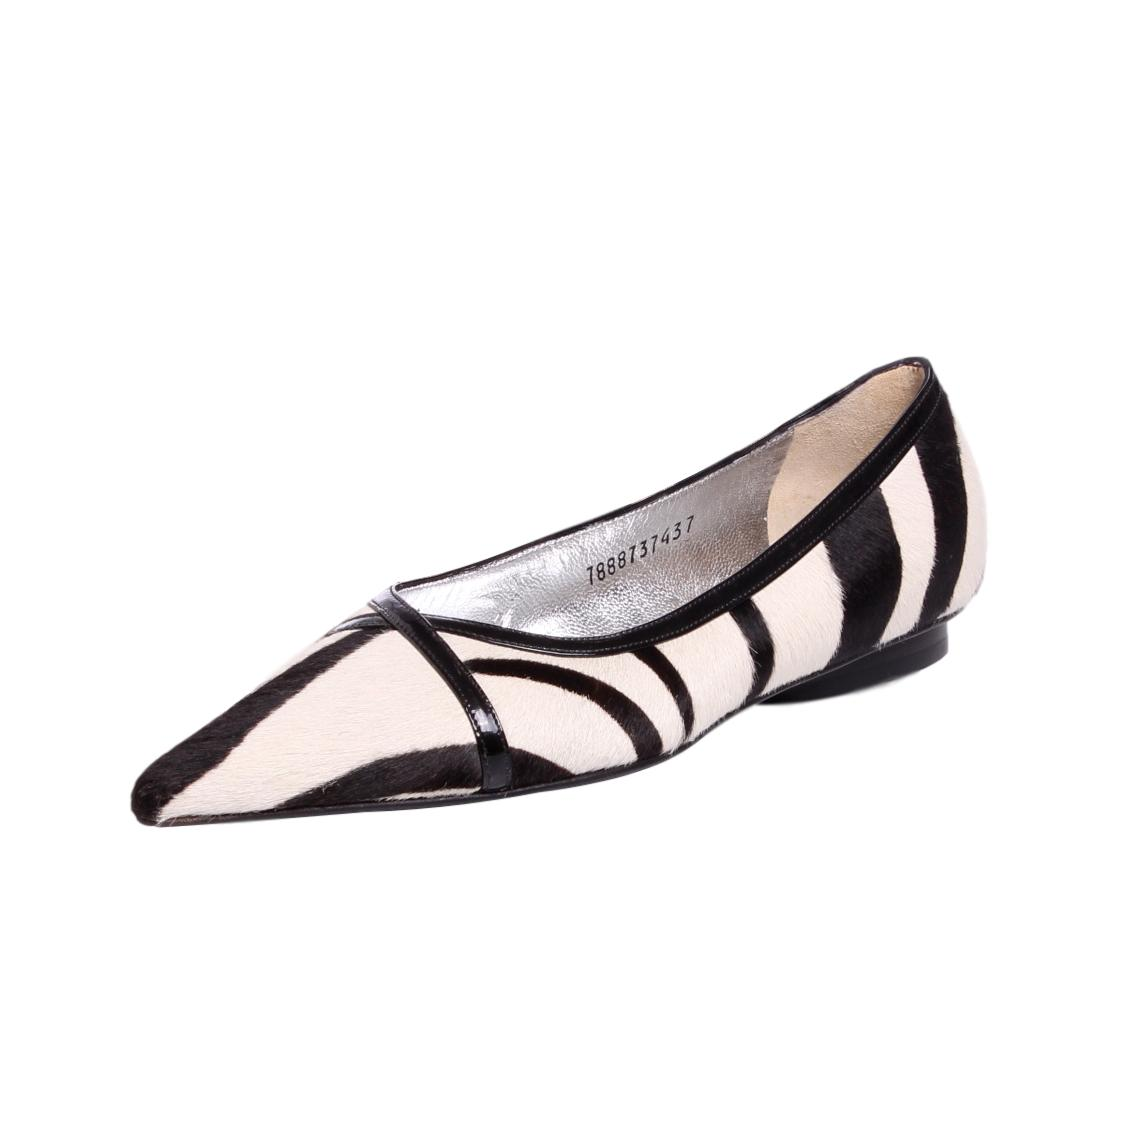 Dolce & Gabbana Ponyhair Slingback Flats Cheap Footlocker Pictures Clearance Find Great With Paypal Sale Online Clearance Supply View Cheap Price 8DGeJe0q